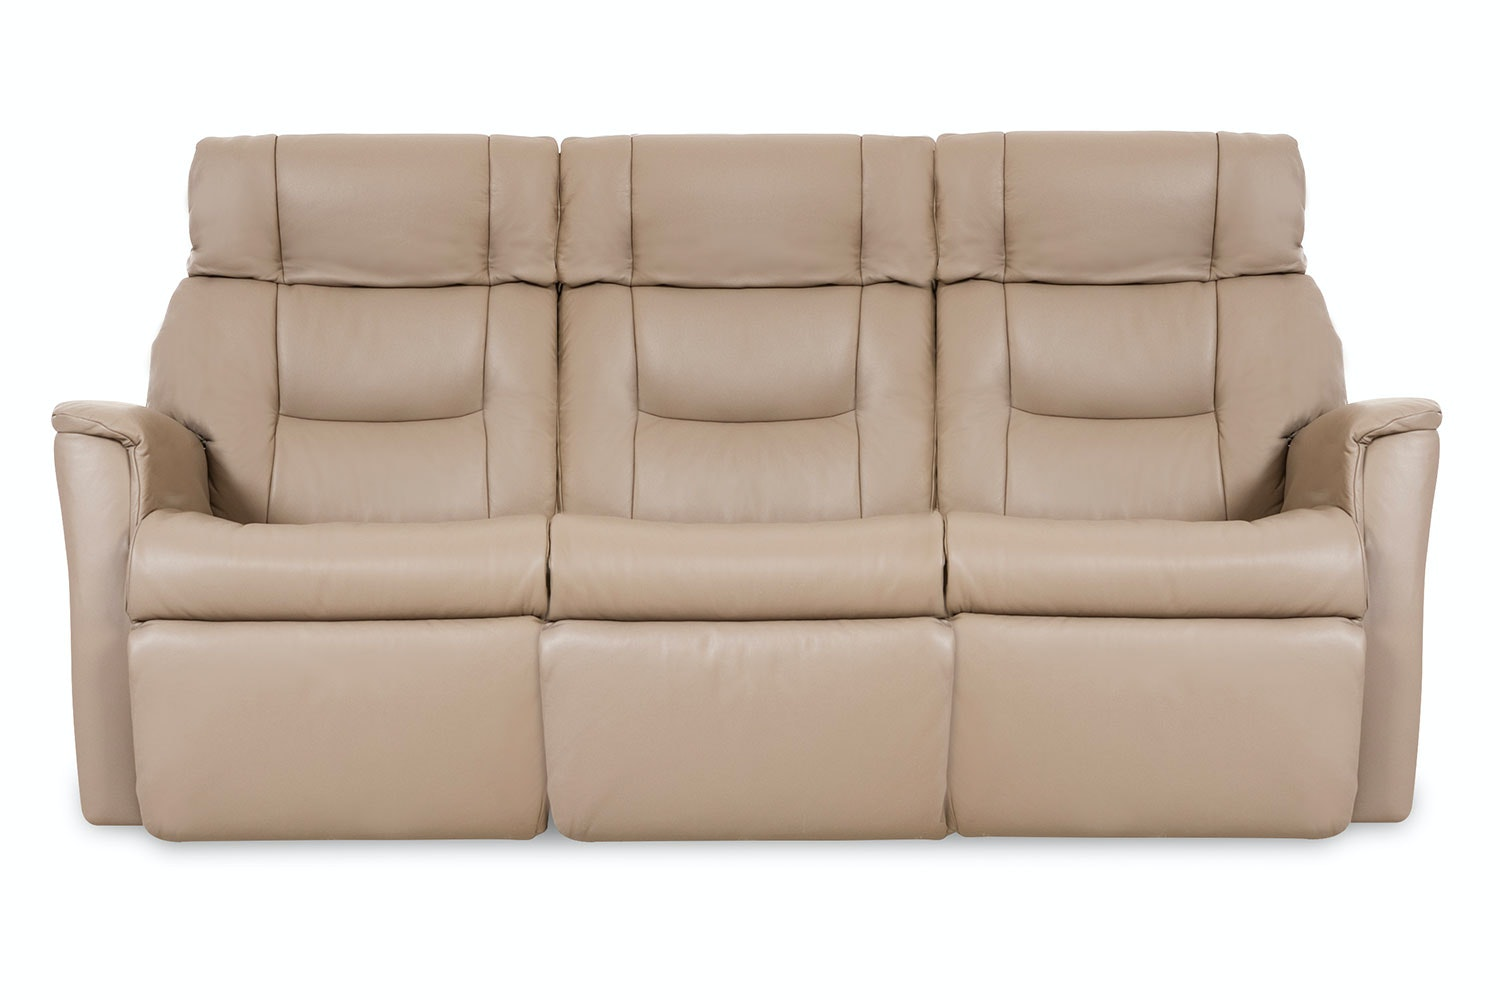 Ventura Leather  3.0 Seat Recliner Sofa - Prime - IMG